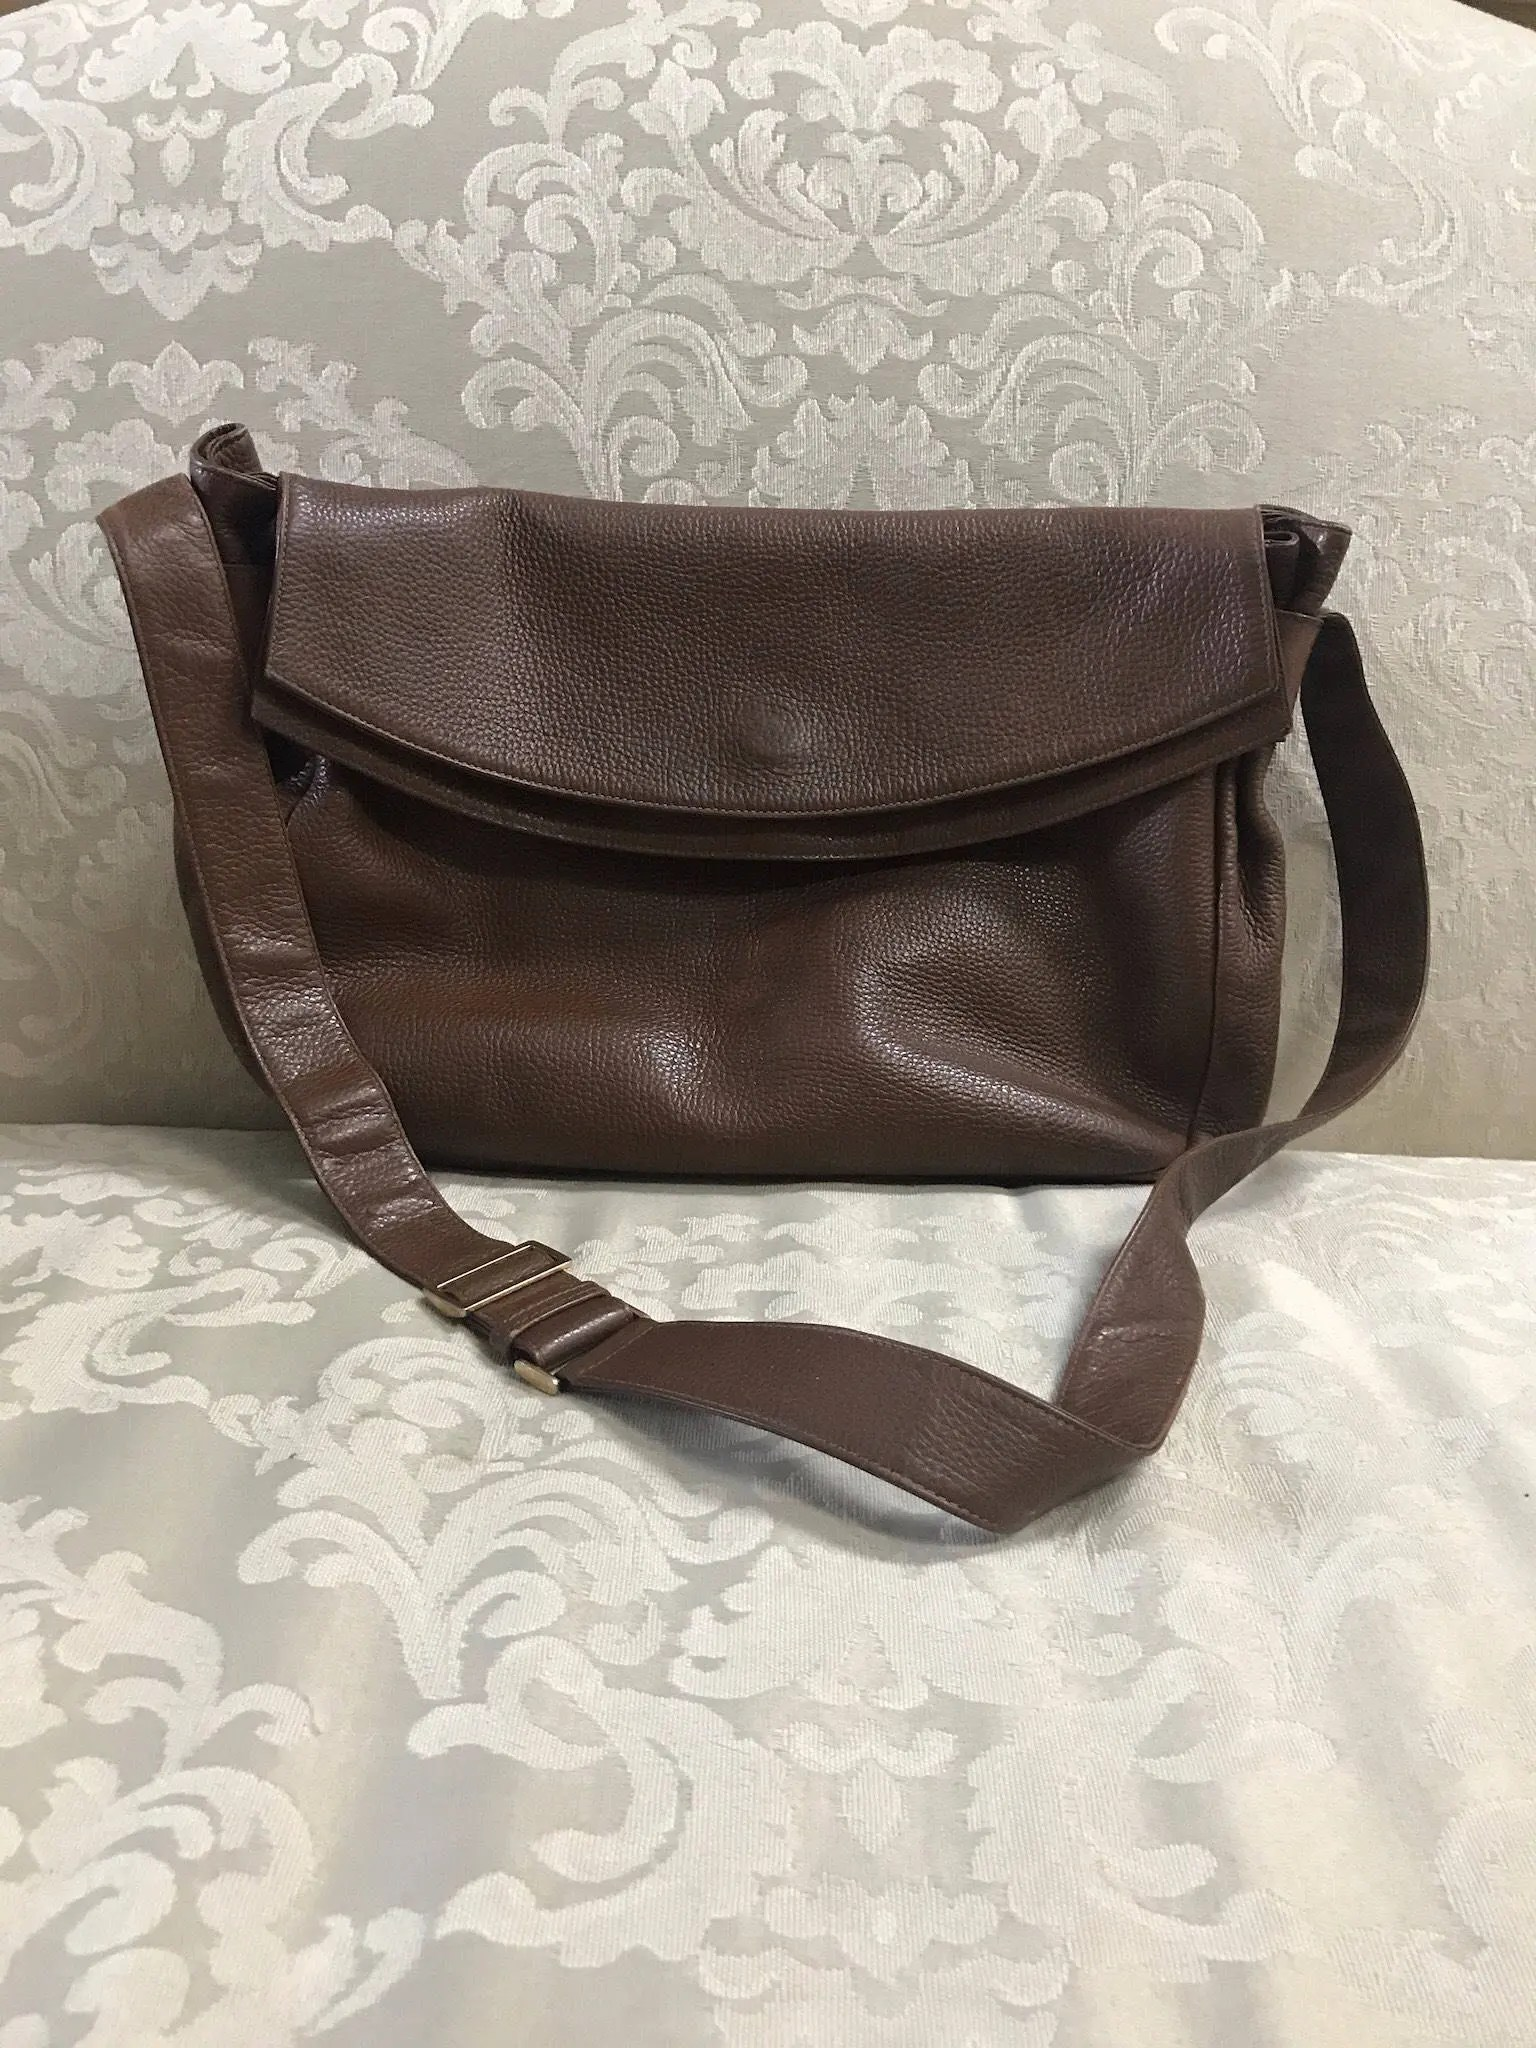 Etsy Vintage Gucci Vintage Gucci Handbag Gucci Crossbody Gucci Vintage Gucci Leather Crossbody Gucci Shoulder Bag Brown Leather Gucci Bag Messenger Bag